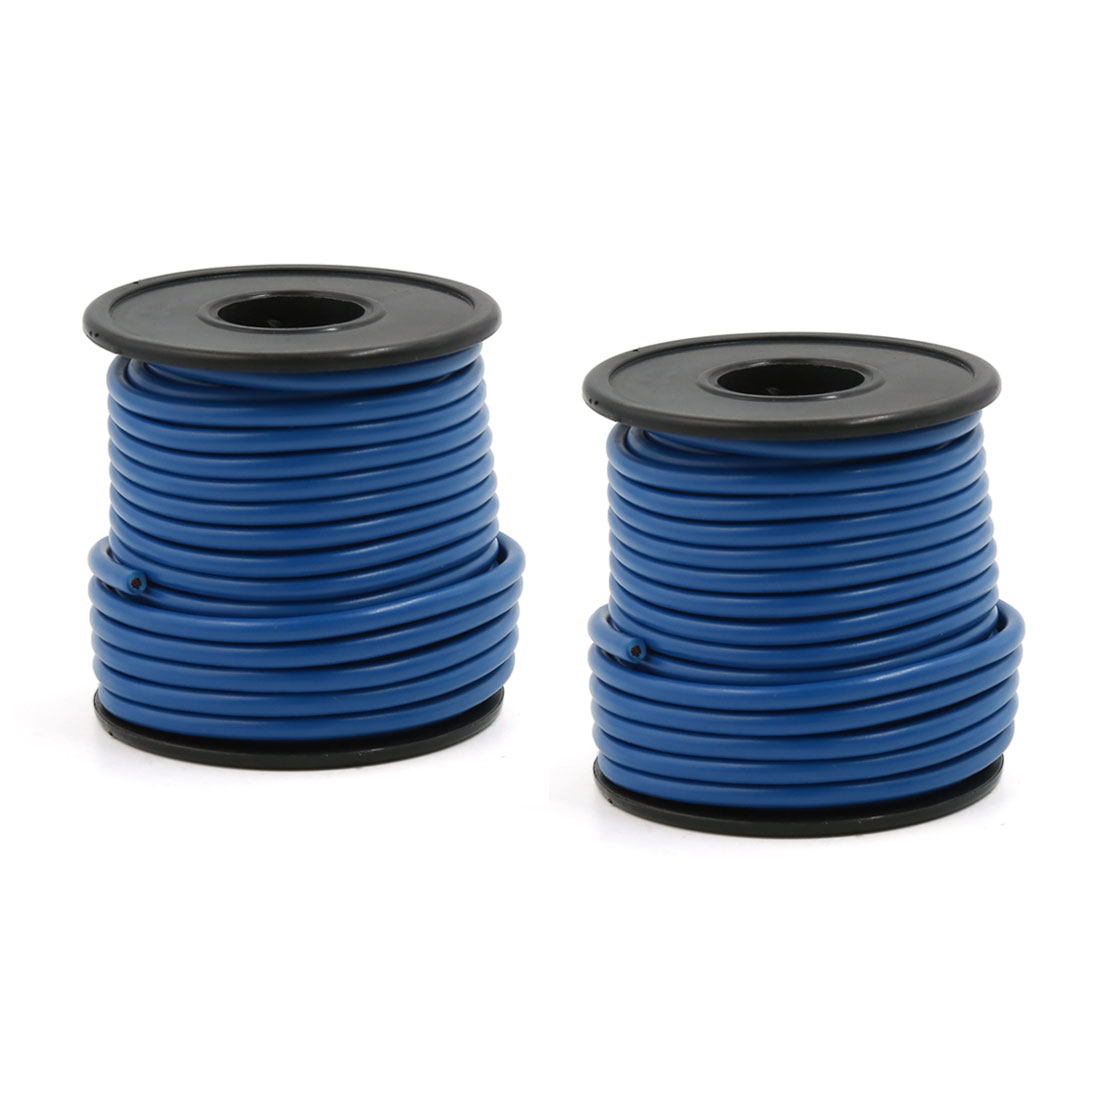 2 Pcs 10 Meters 11 Yards 33 Ft Blue 1.5mm2 Single Core Control Cable Cord for Car